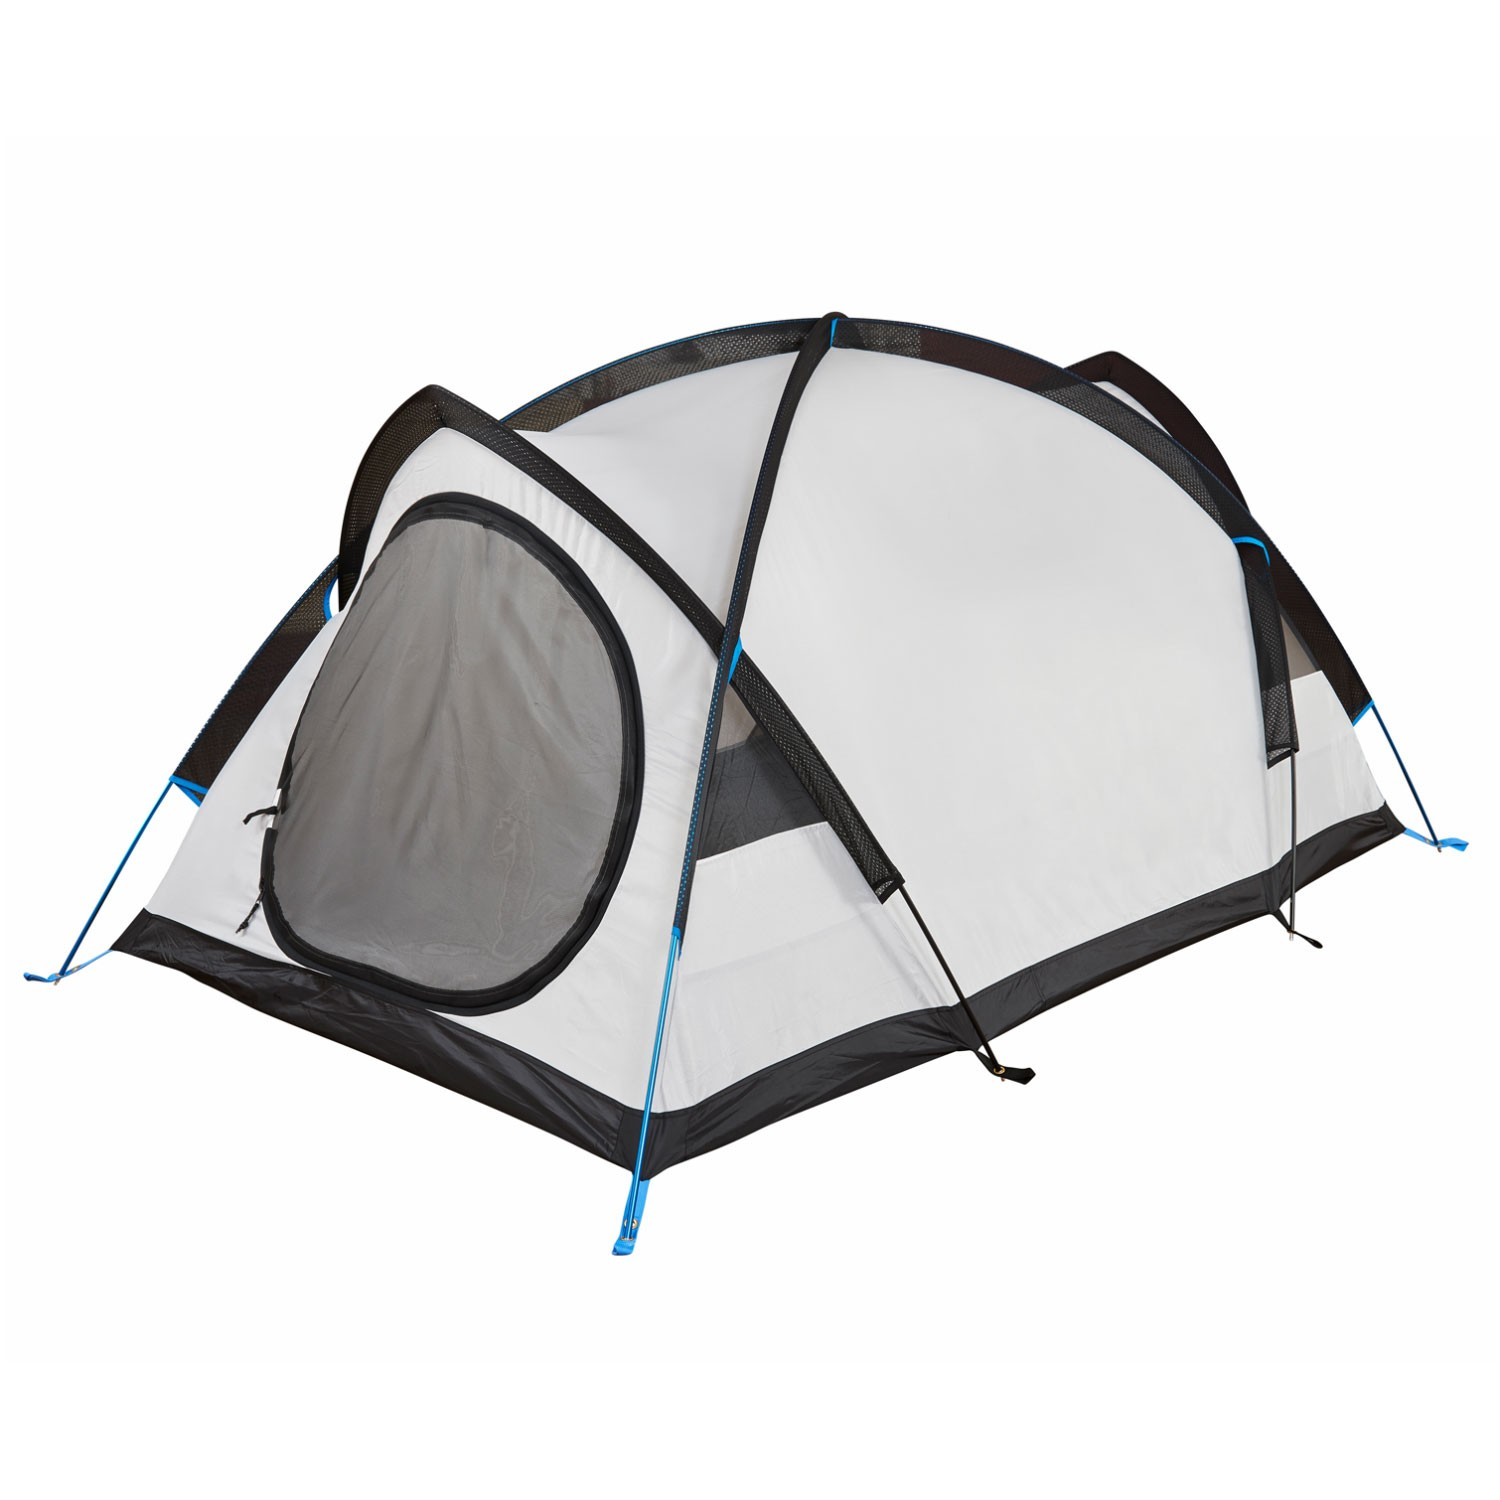 Wild Country Trisar 2D Tent